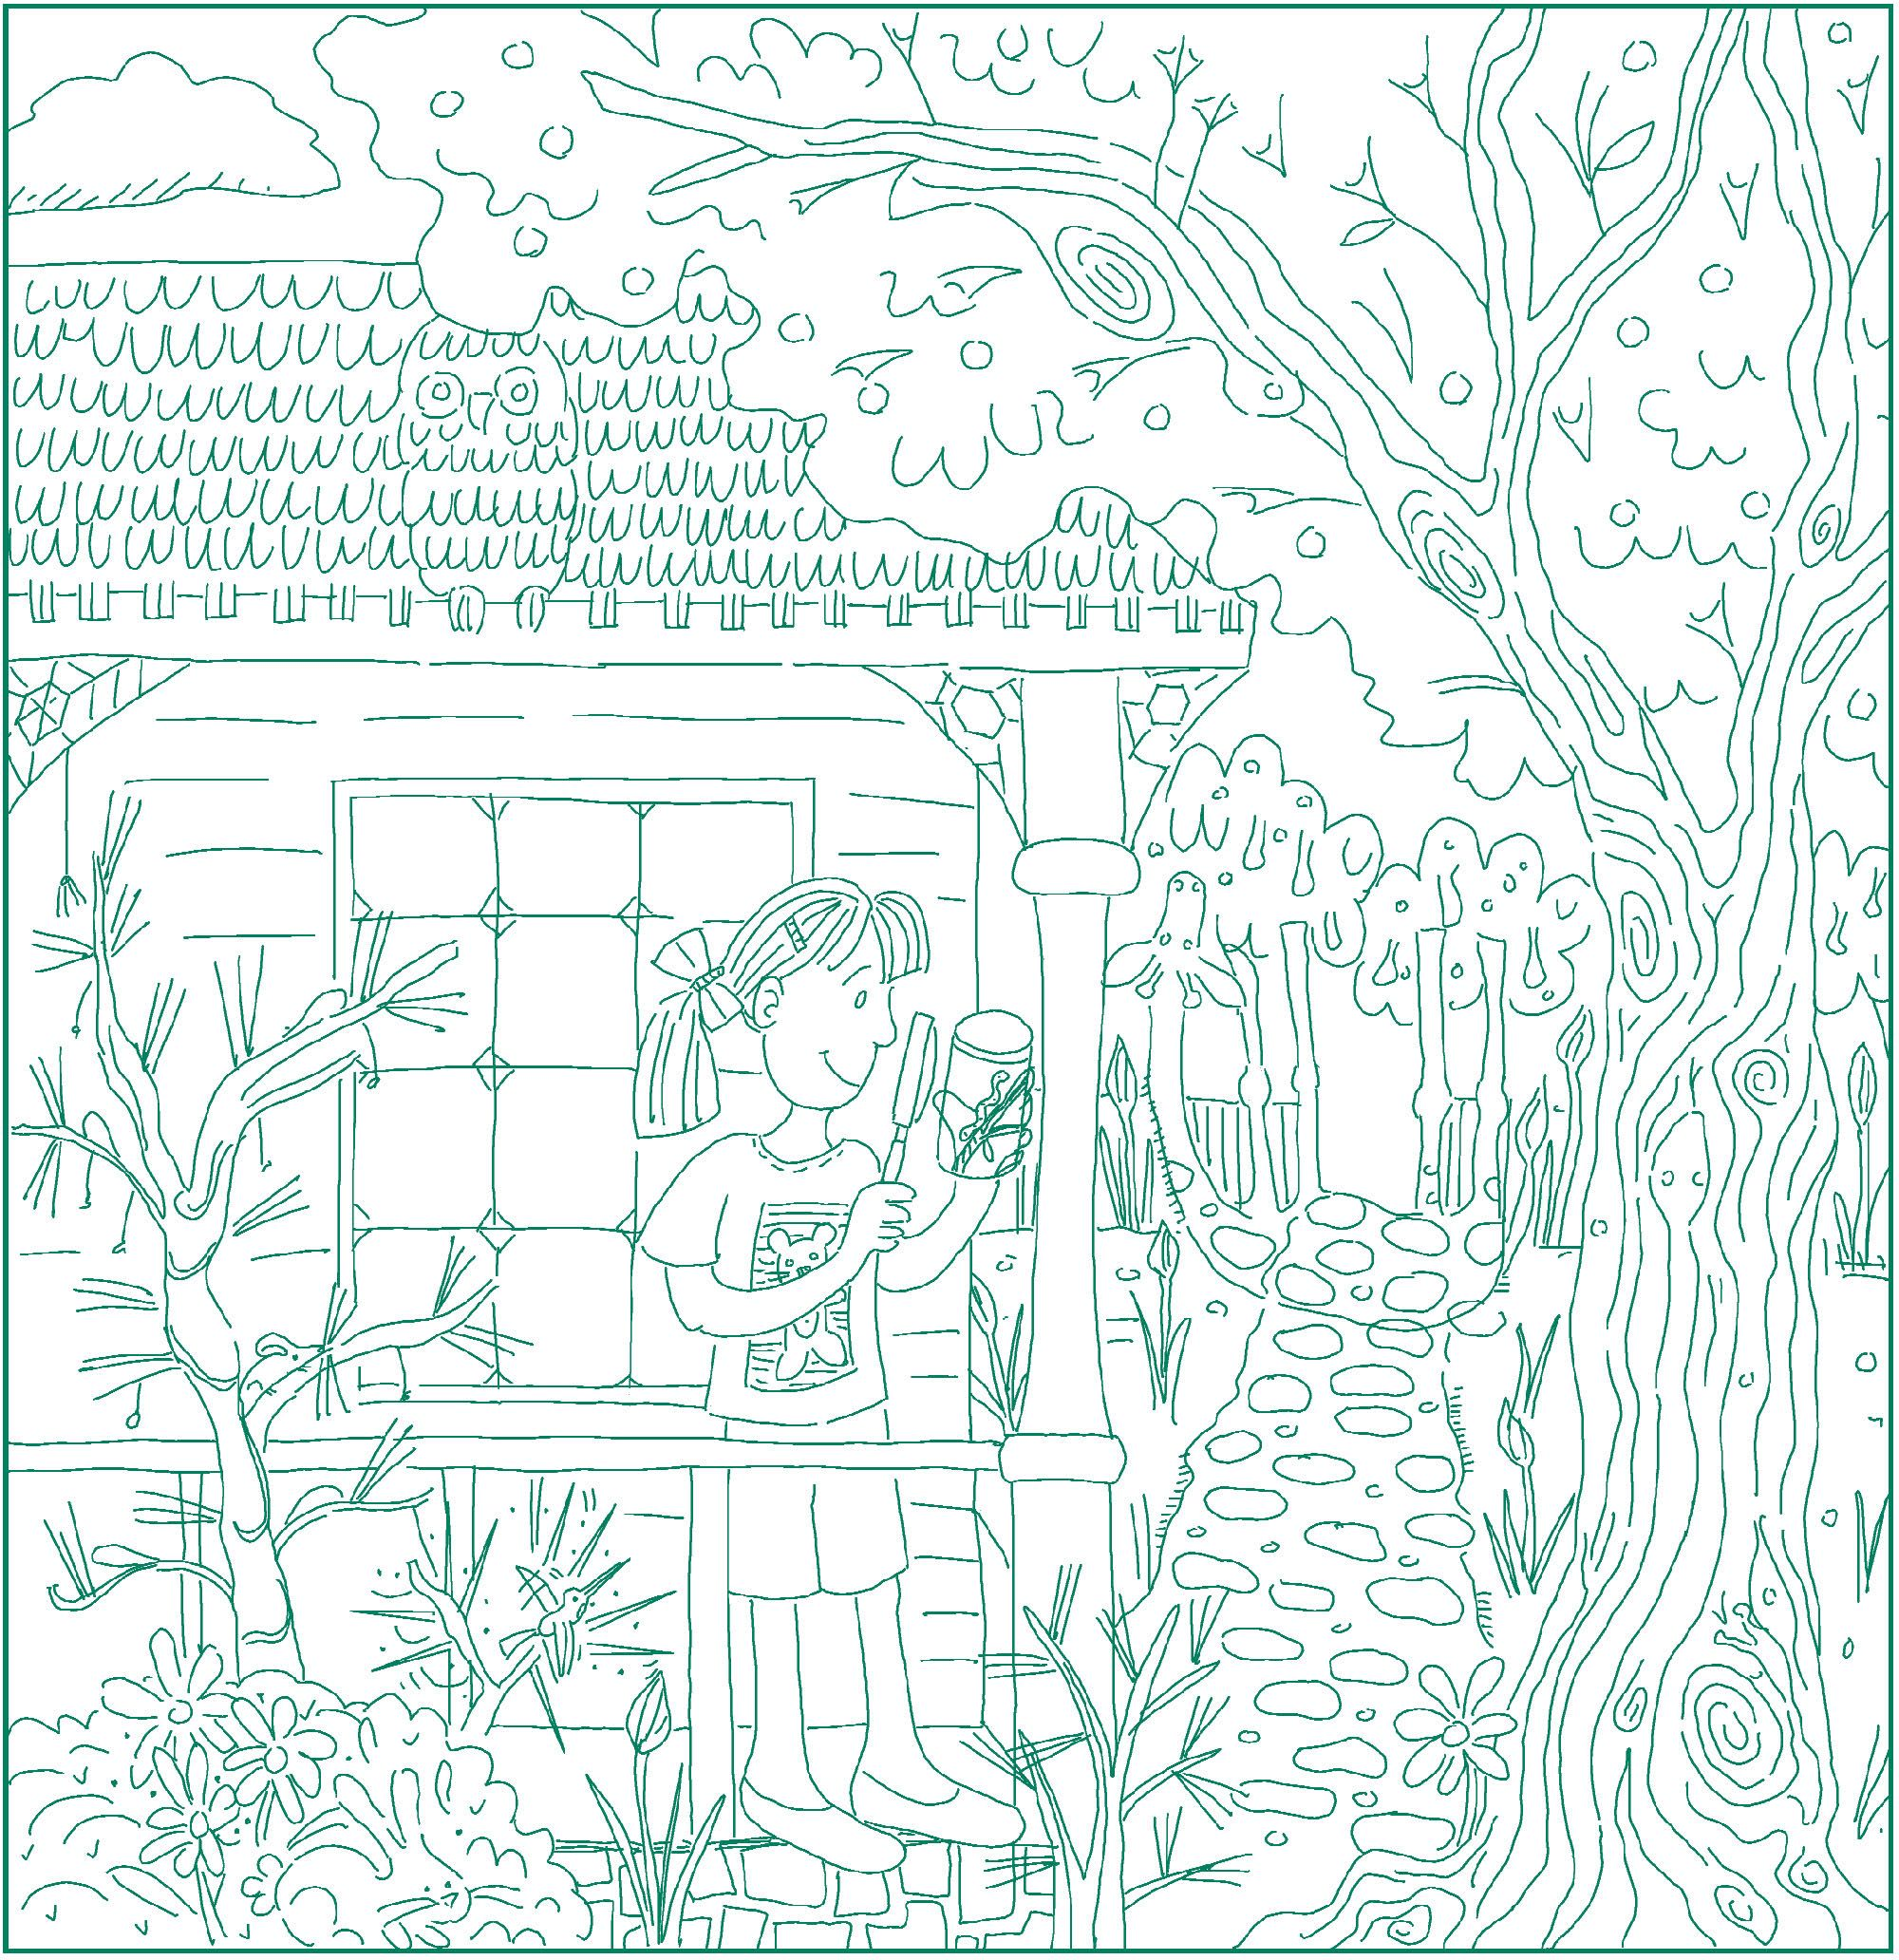 camouflage animal coloring pages - photo#43